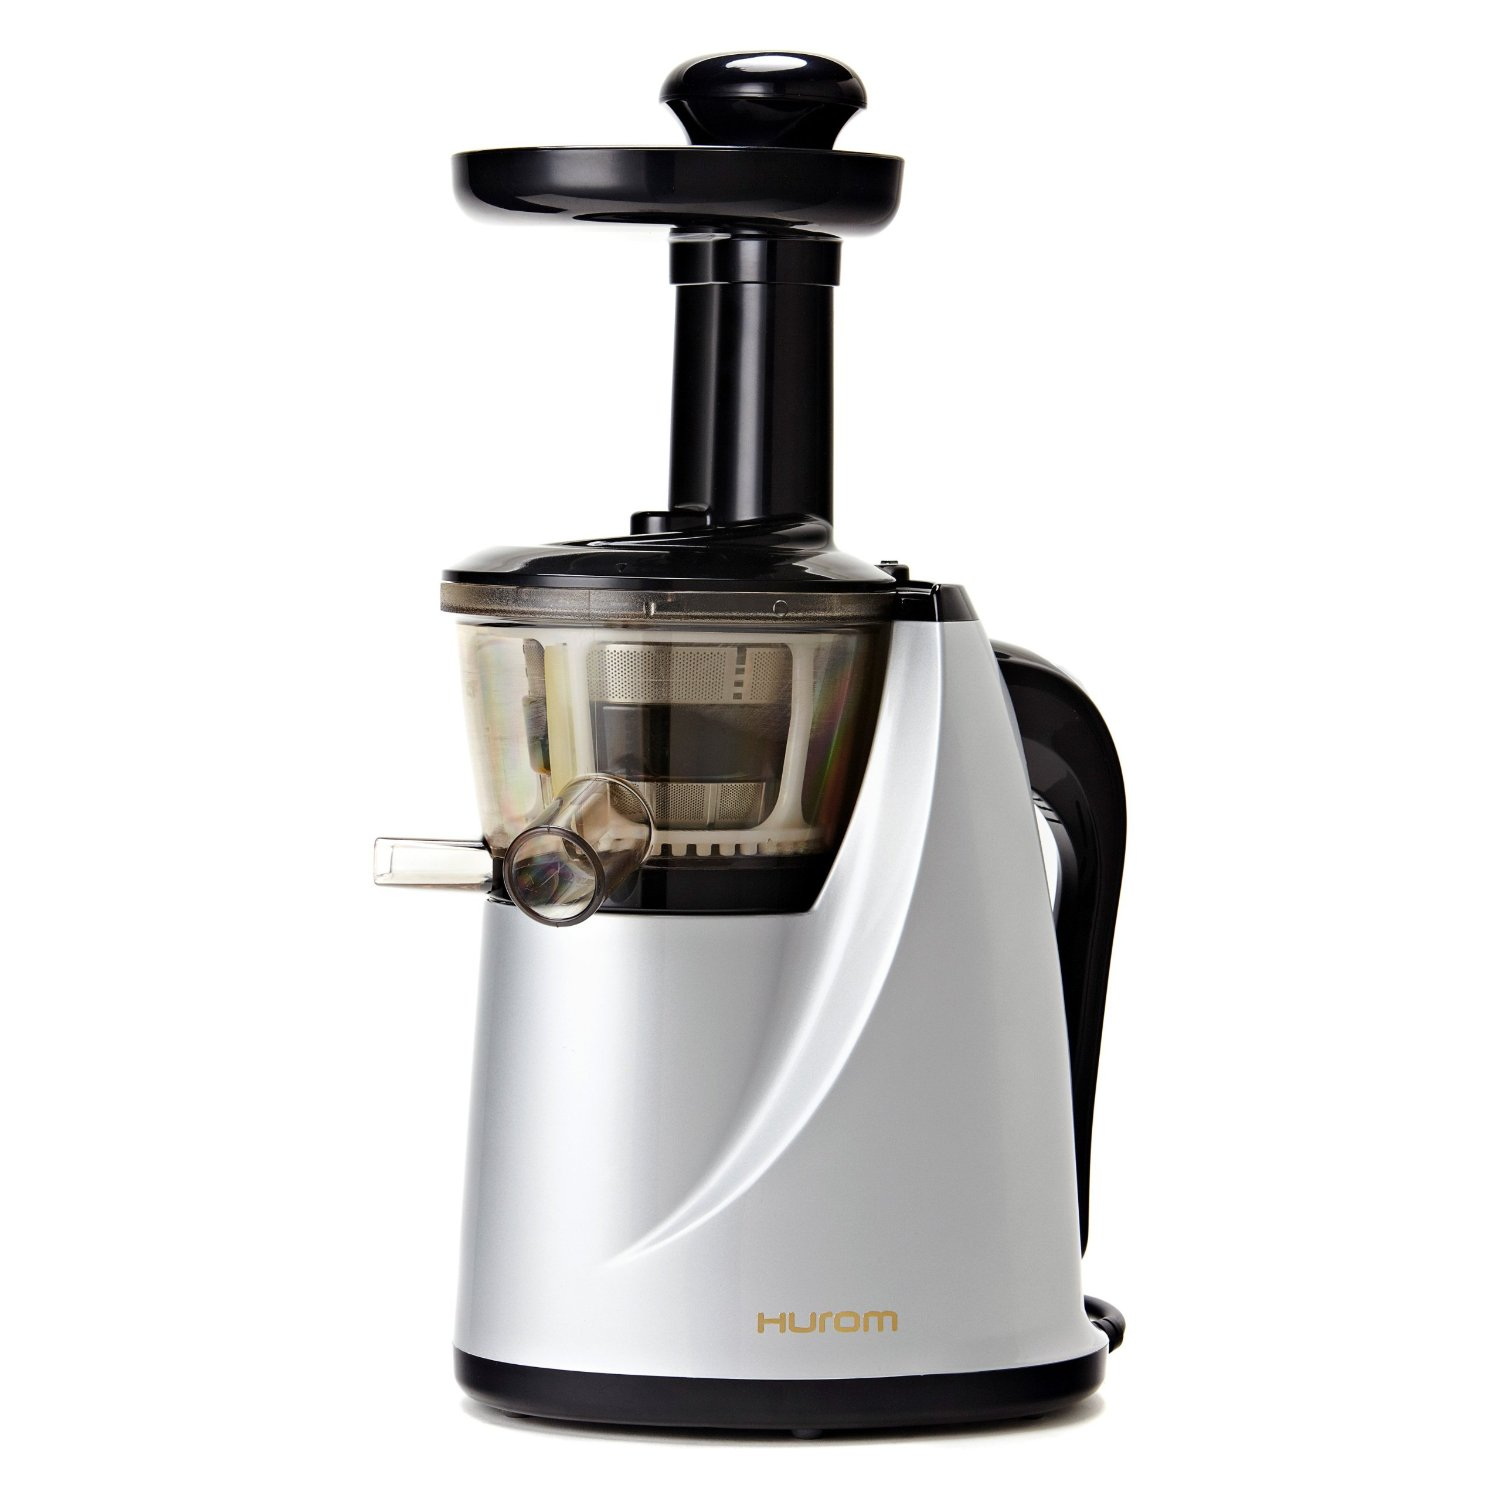 Hurom Slow Juicer Disadvantage : Hurom HU-100 Masticating Slow Juicer Review - Best Cold Press Juicers